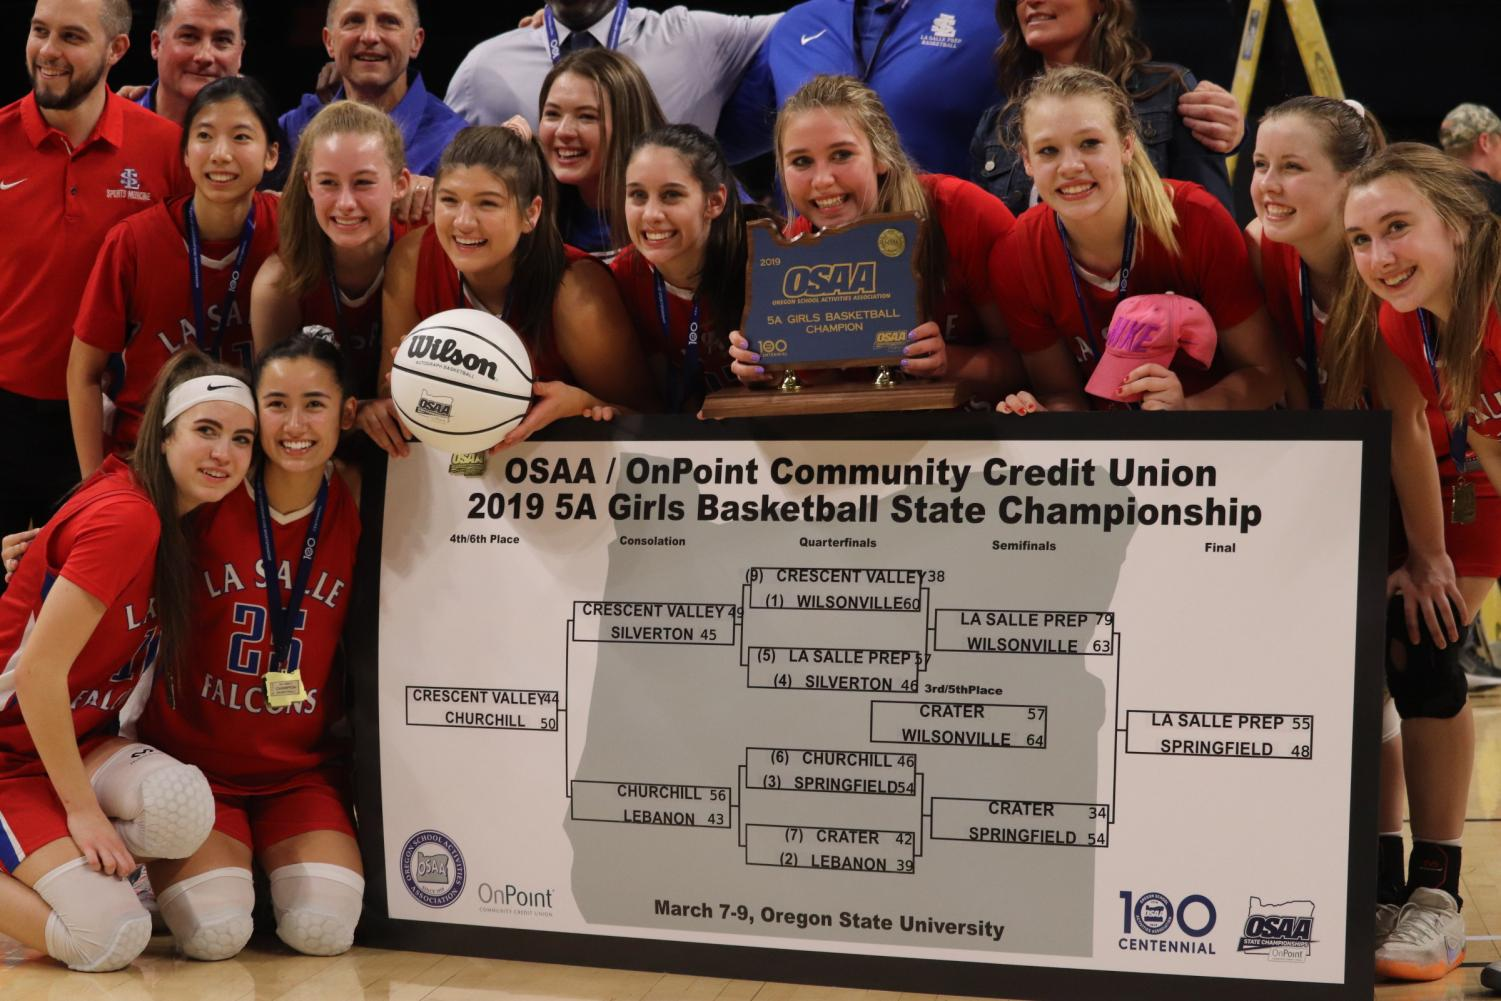 The+whole+team+gathers+around+the+final+bracket+presented+by+OnPoint+Community+Credit+Union%2C+holding+the+state+champion+plaque+and+first+place+ball.